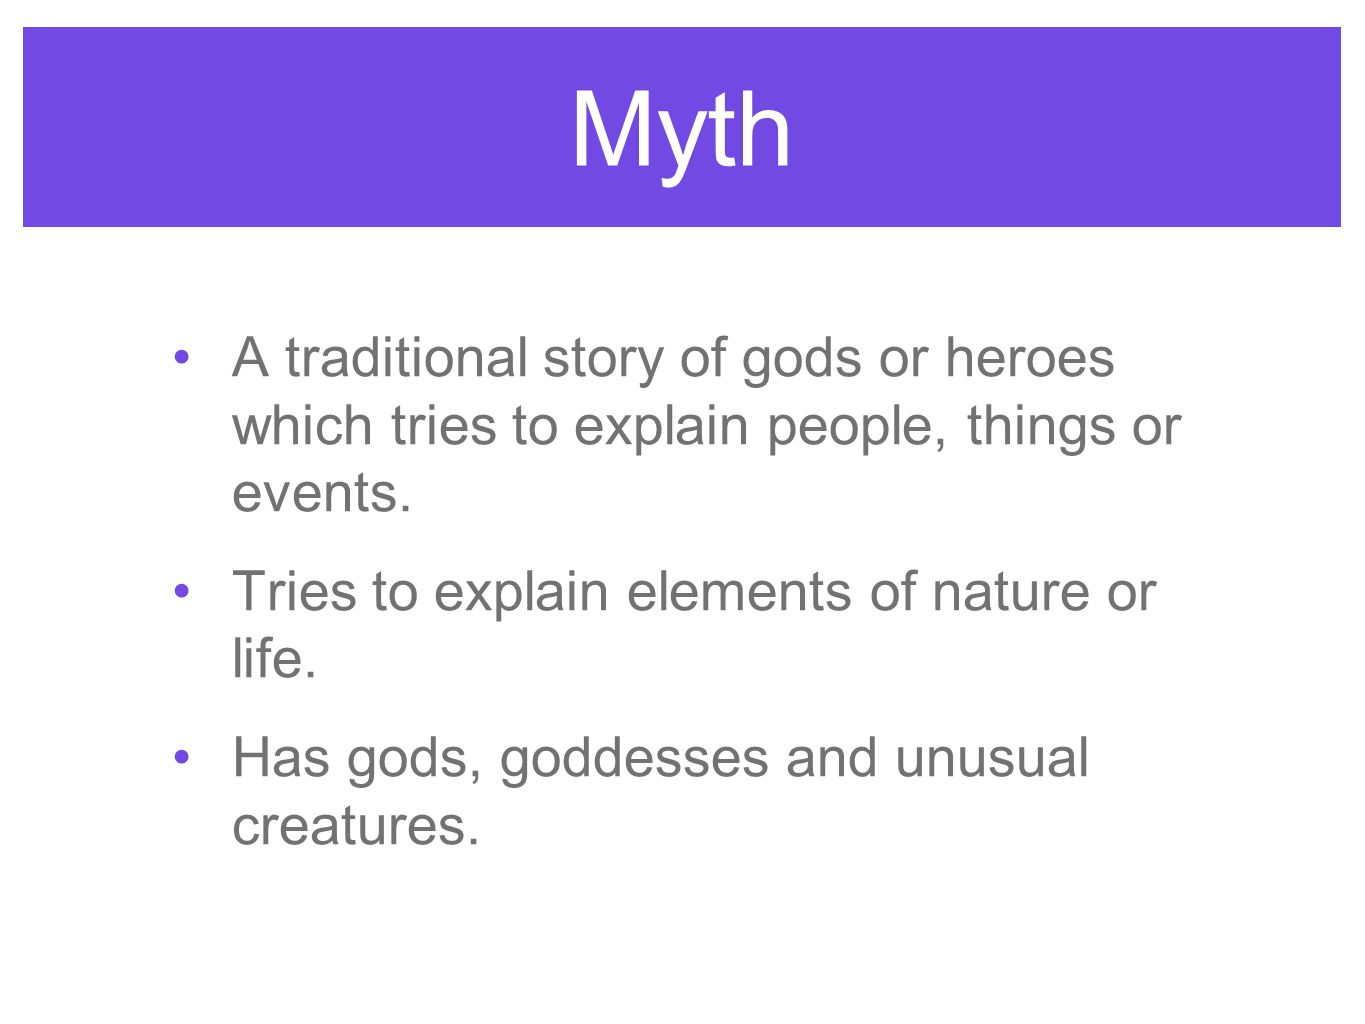 Myth A traditional story of gods or heroes which tries to explain people, things or events. Tries to explain elements of nature or life.